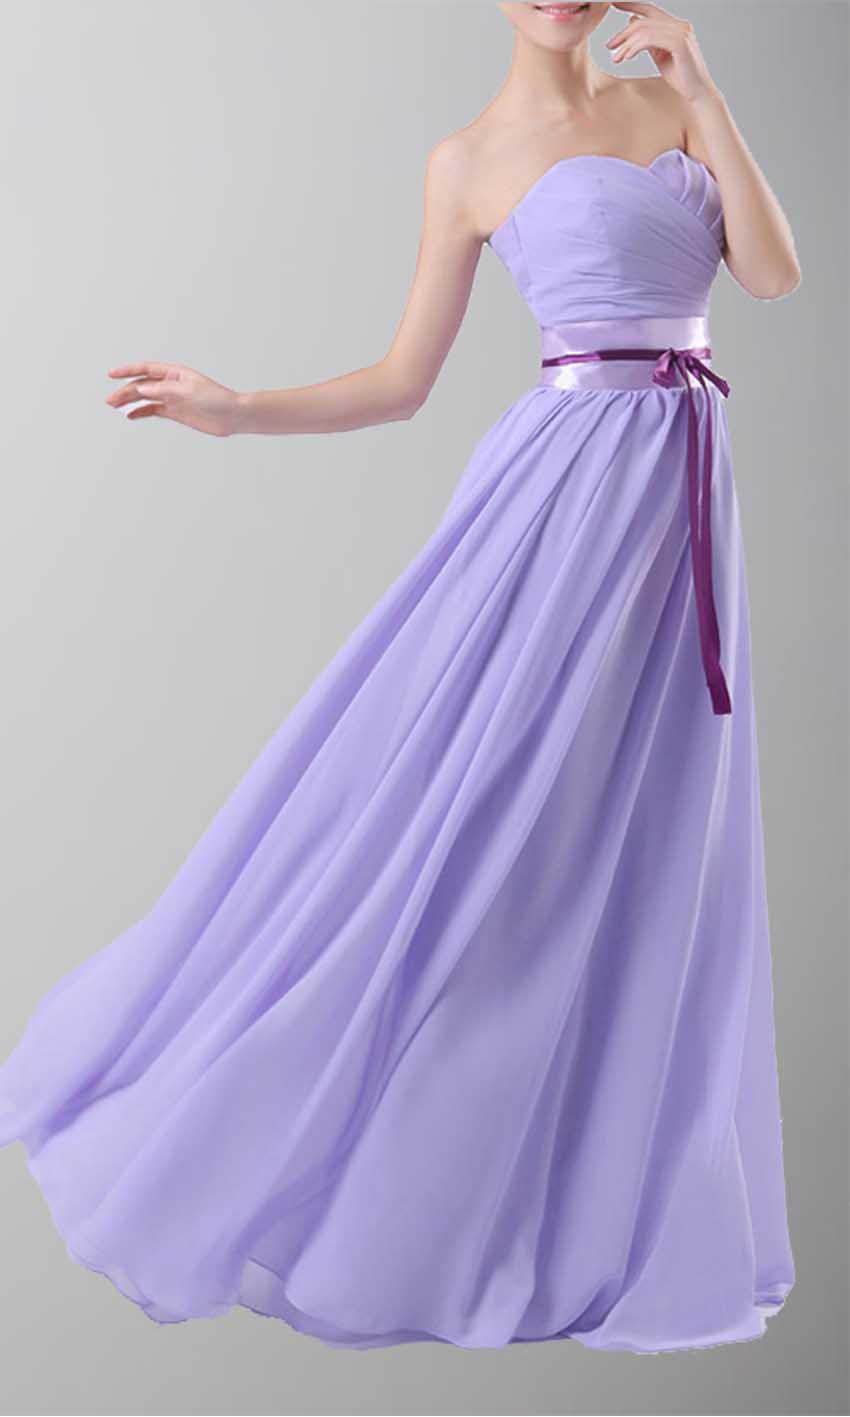 Wedding - Strapless Sweetheart Long Chiffon Bridesmaid Dresses KSP107 [KSP107] - £85.00 : Cheap Prom Dresses Uk, Bridesmaid Dresses, 2014 Prom & Evening Dresses, Look for cheap elegant prom dresses 2014, cocktail gowns, or dresses for special occasions? kissprom.co